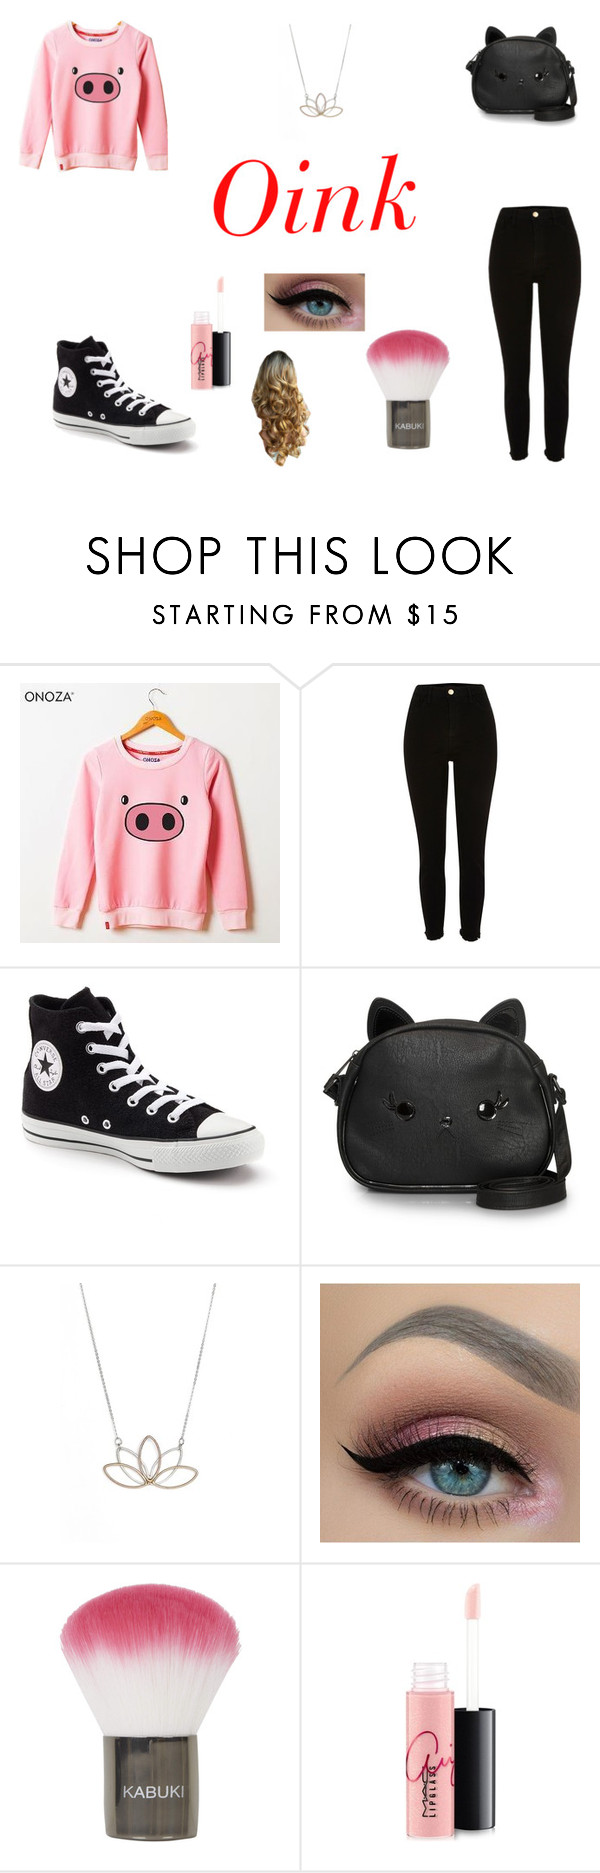 """""""Untitled #70"""" by katiec7 ❤ liked on Polyvore featuring Onoza, River Island, Converse, Loungefly, Nashelle, Topshop and MAC Cosmetics"""